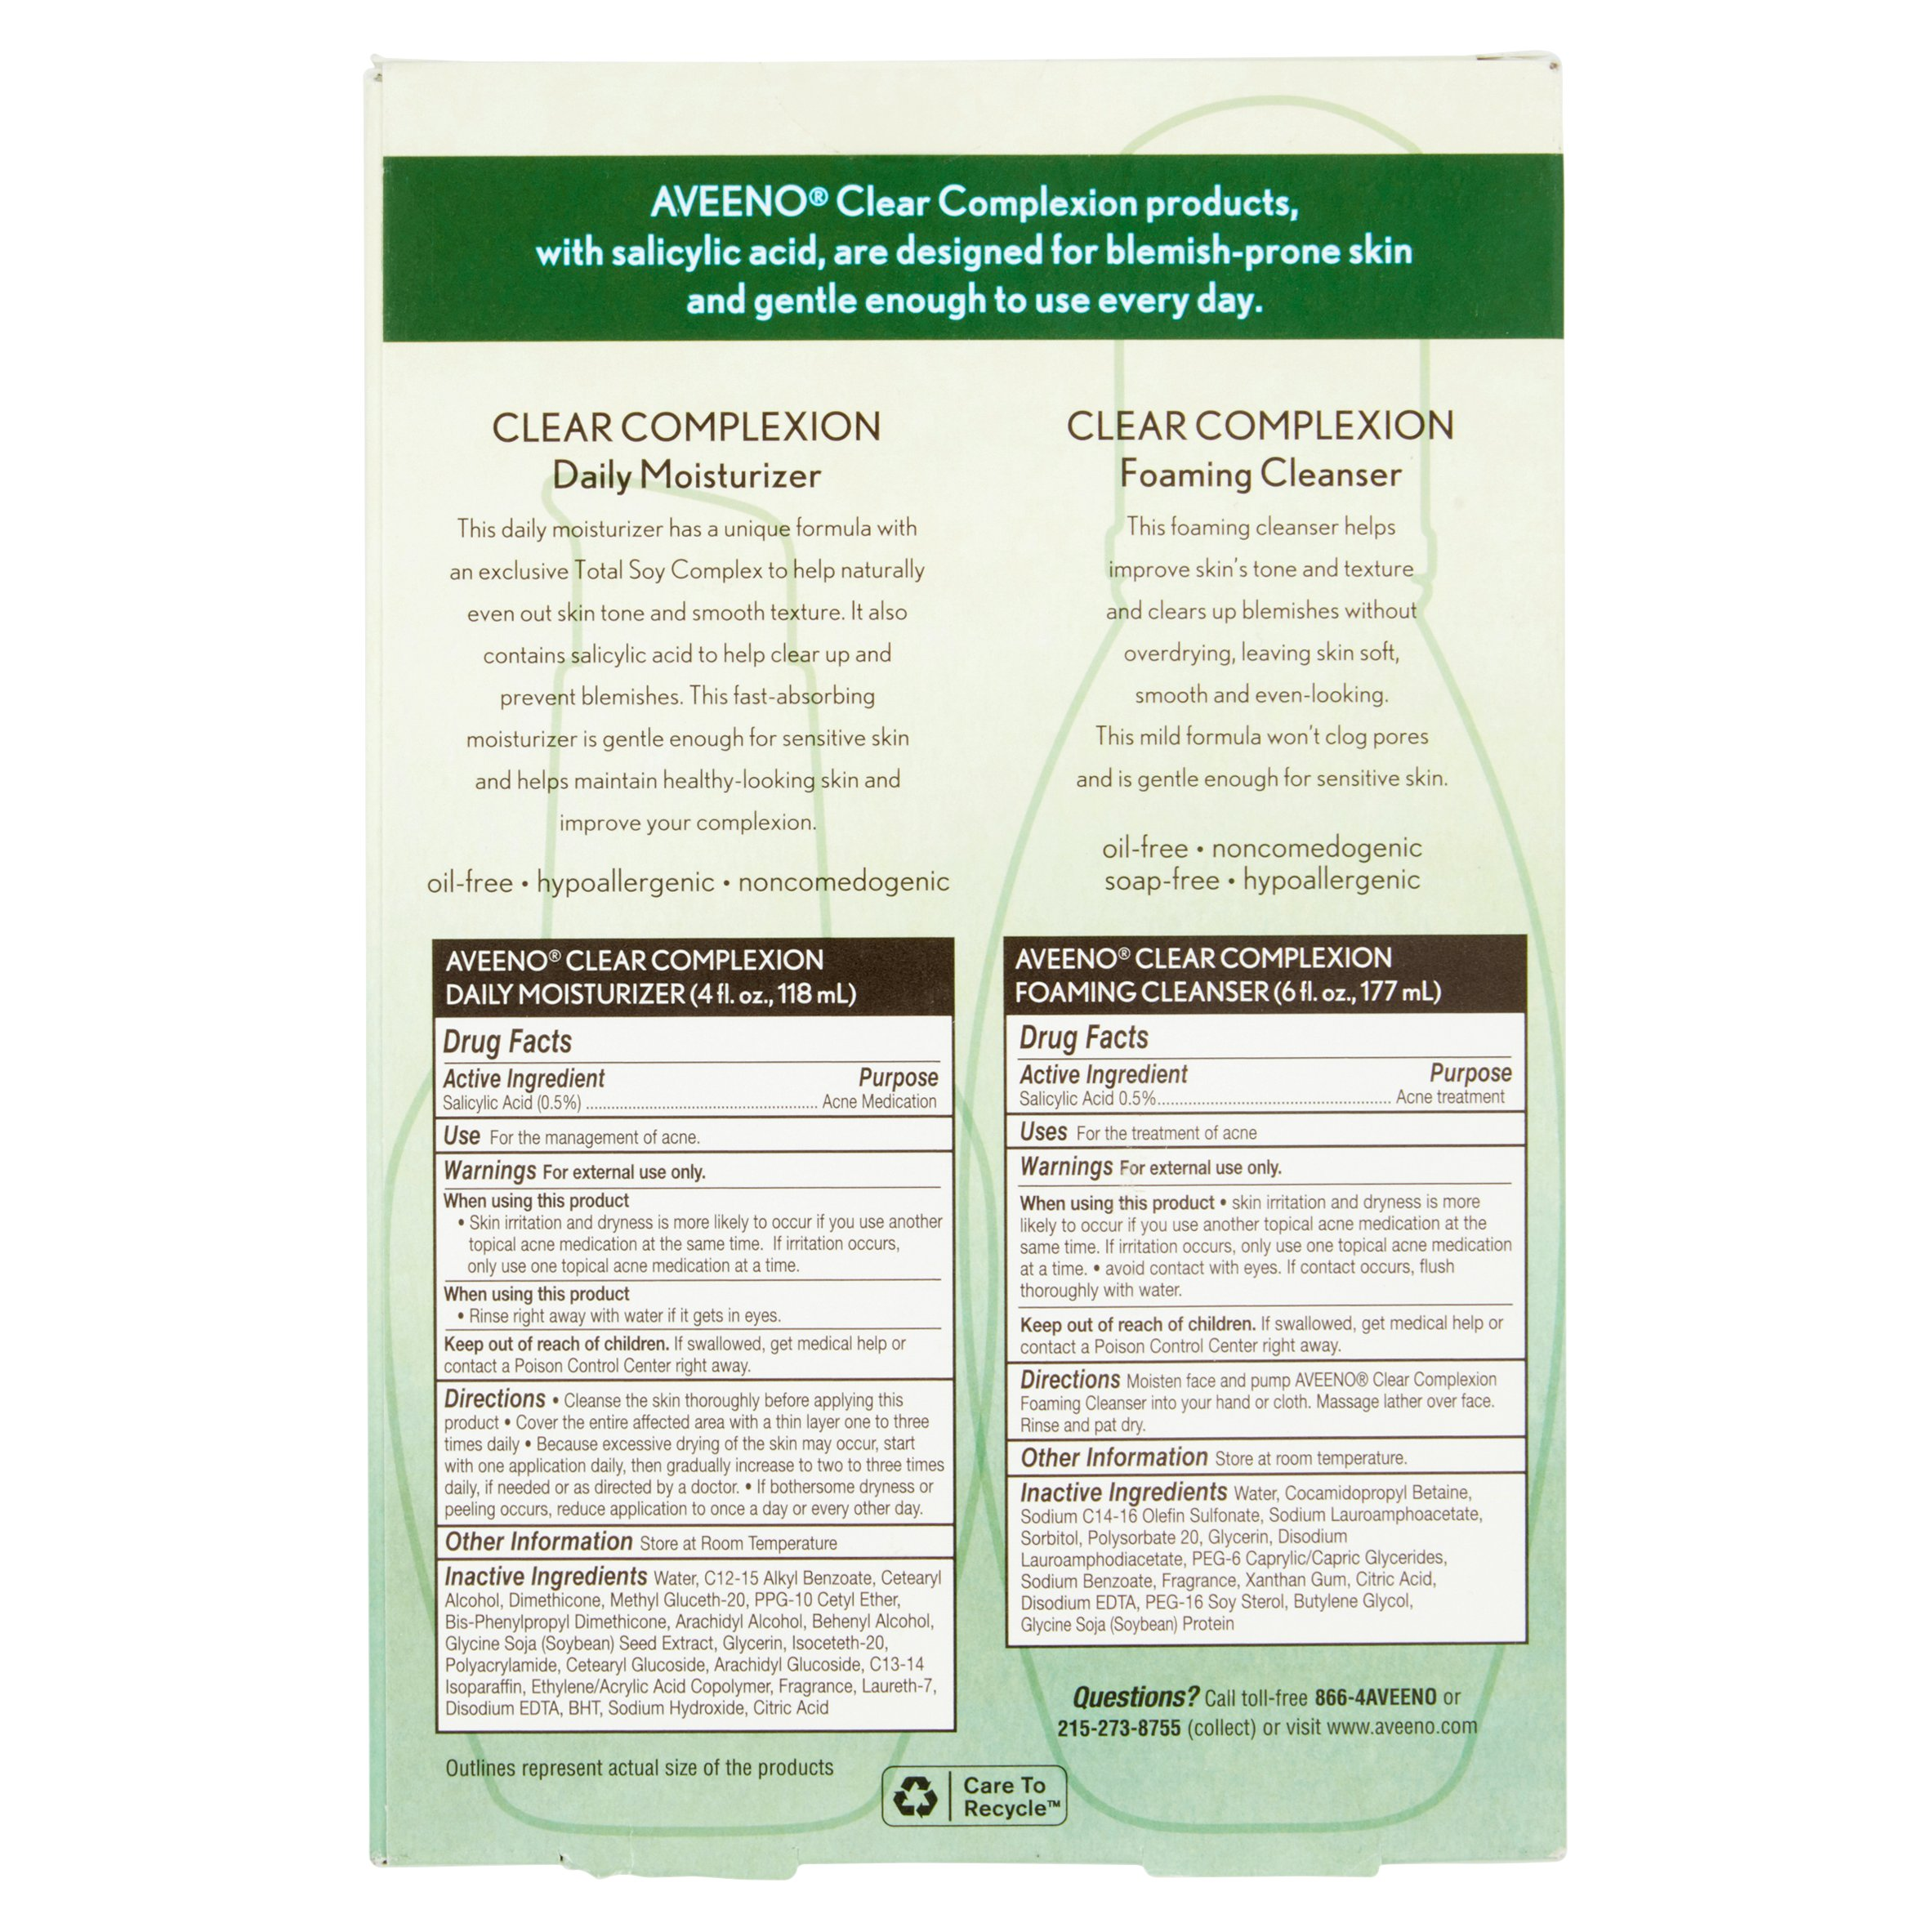 Aveeno Favorites Salicylic Acid Blemish Treatment Special Value Full Size Nia 24 Physical Cleansing Scrub, 3.75 fl. oz.